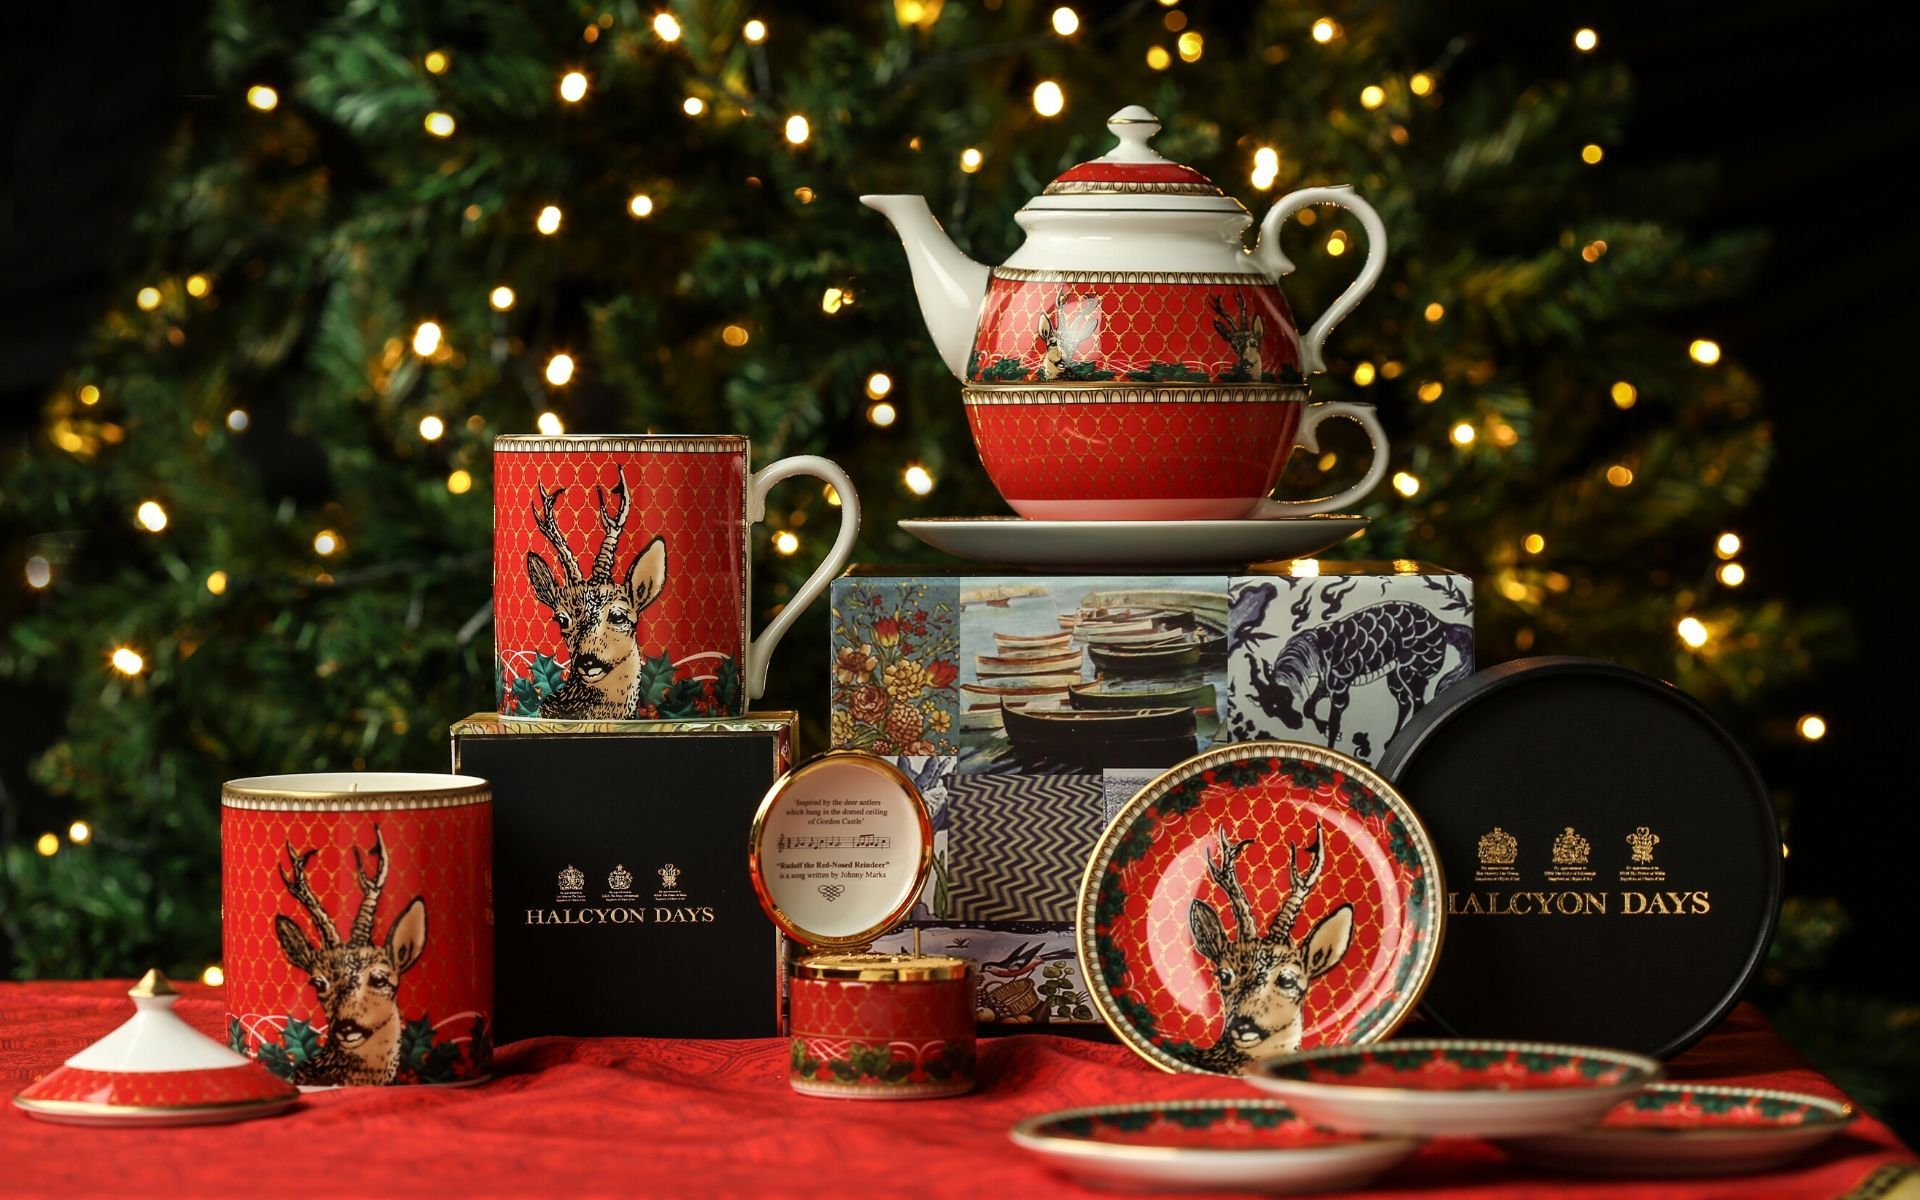 Halcyon Days' 2019 Christmas Collection Adds A Festive Touch To Your Home